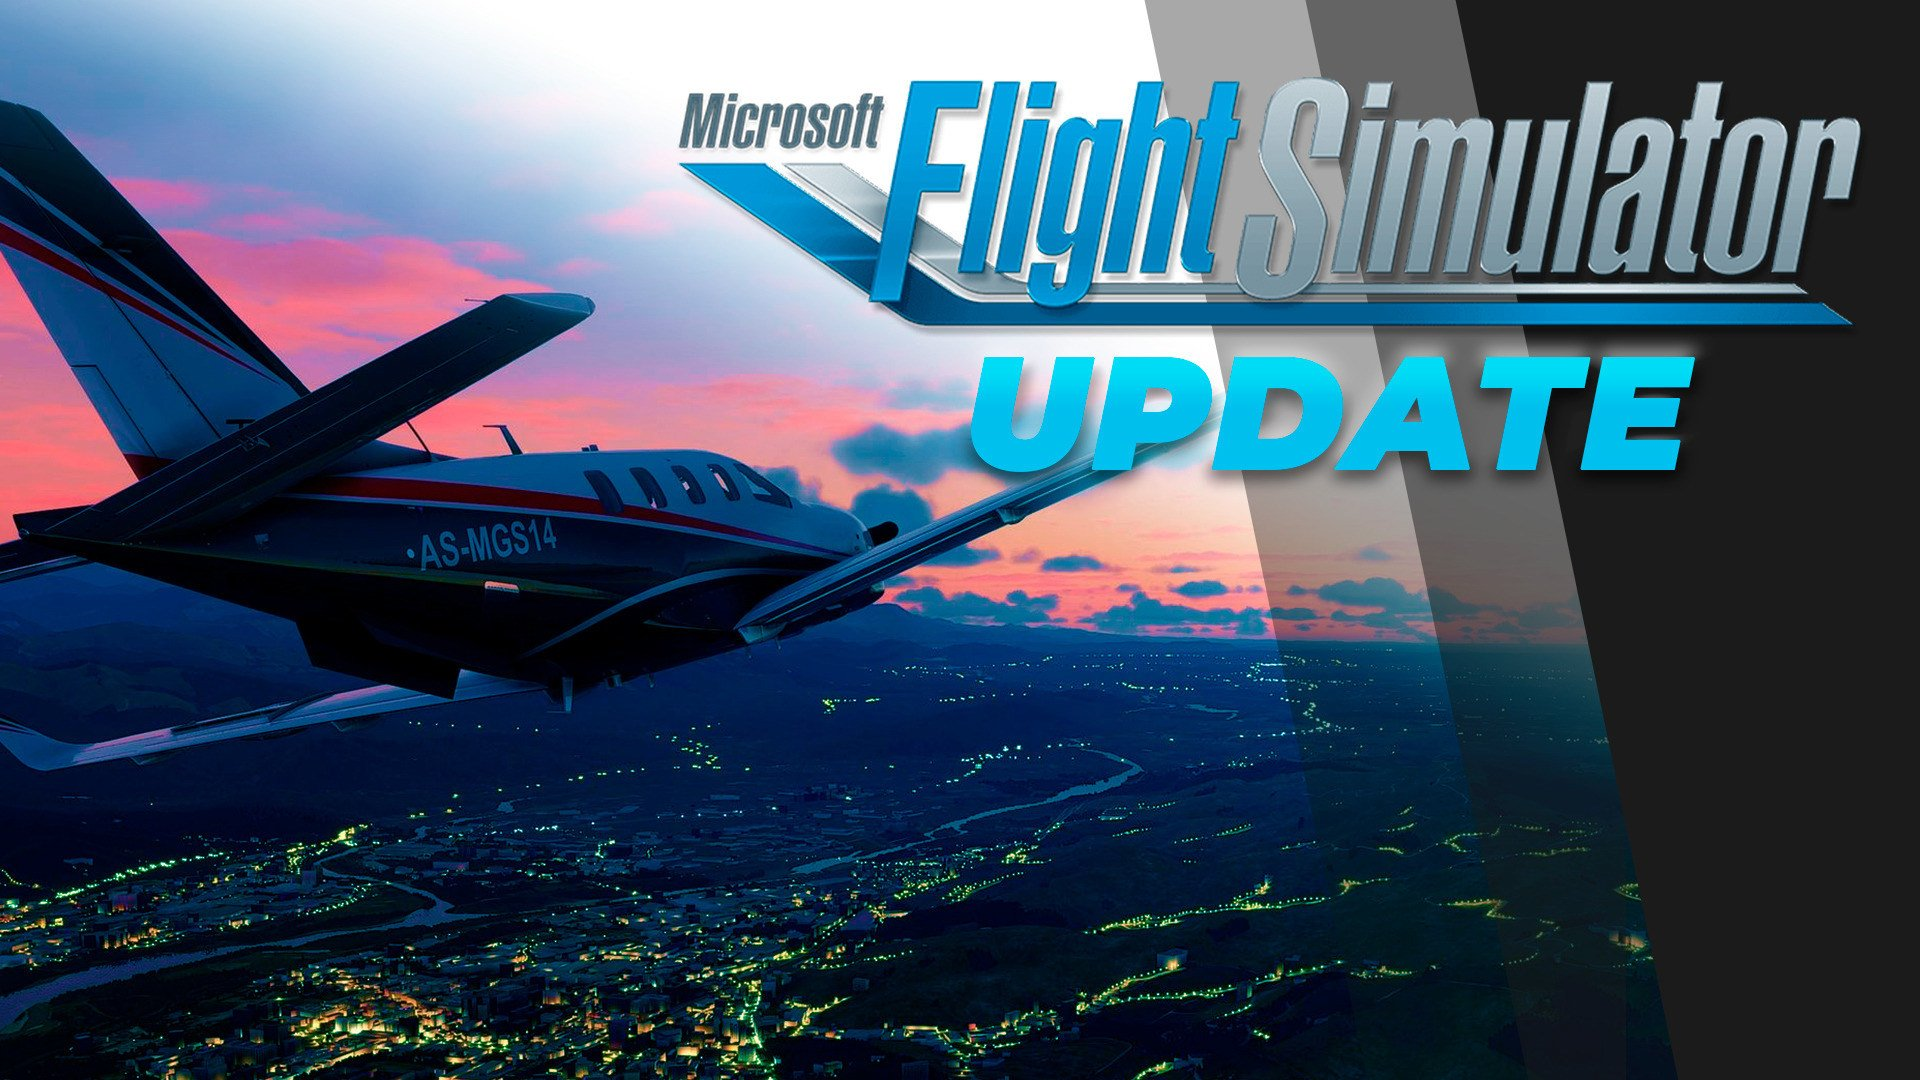 Microsoft, Gaming, Spiele, Games, Flugzeug, flugsimulation, Flight Simulator 2020, Flight Simulator, Microsoft Flight Simulator, Flugsimulator, Microsoft Flight Simulator 2020, FlightSim, GamePass, Microsoft GamePass, FSX, FSXX, Microsoft Flugsimulator Update, Microsoft Flight Simulator Update, Microsoft Flight Simulator 2020 Update, MSFT FlightSim 2002 Update, Flight Simulator Update, Flight Simulator 2020 Update